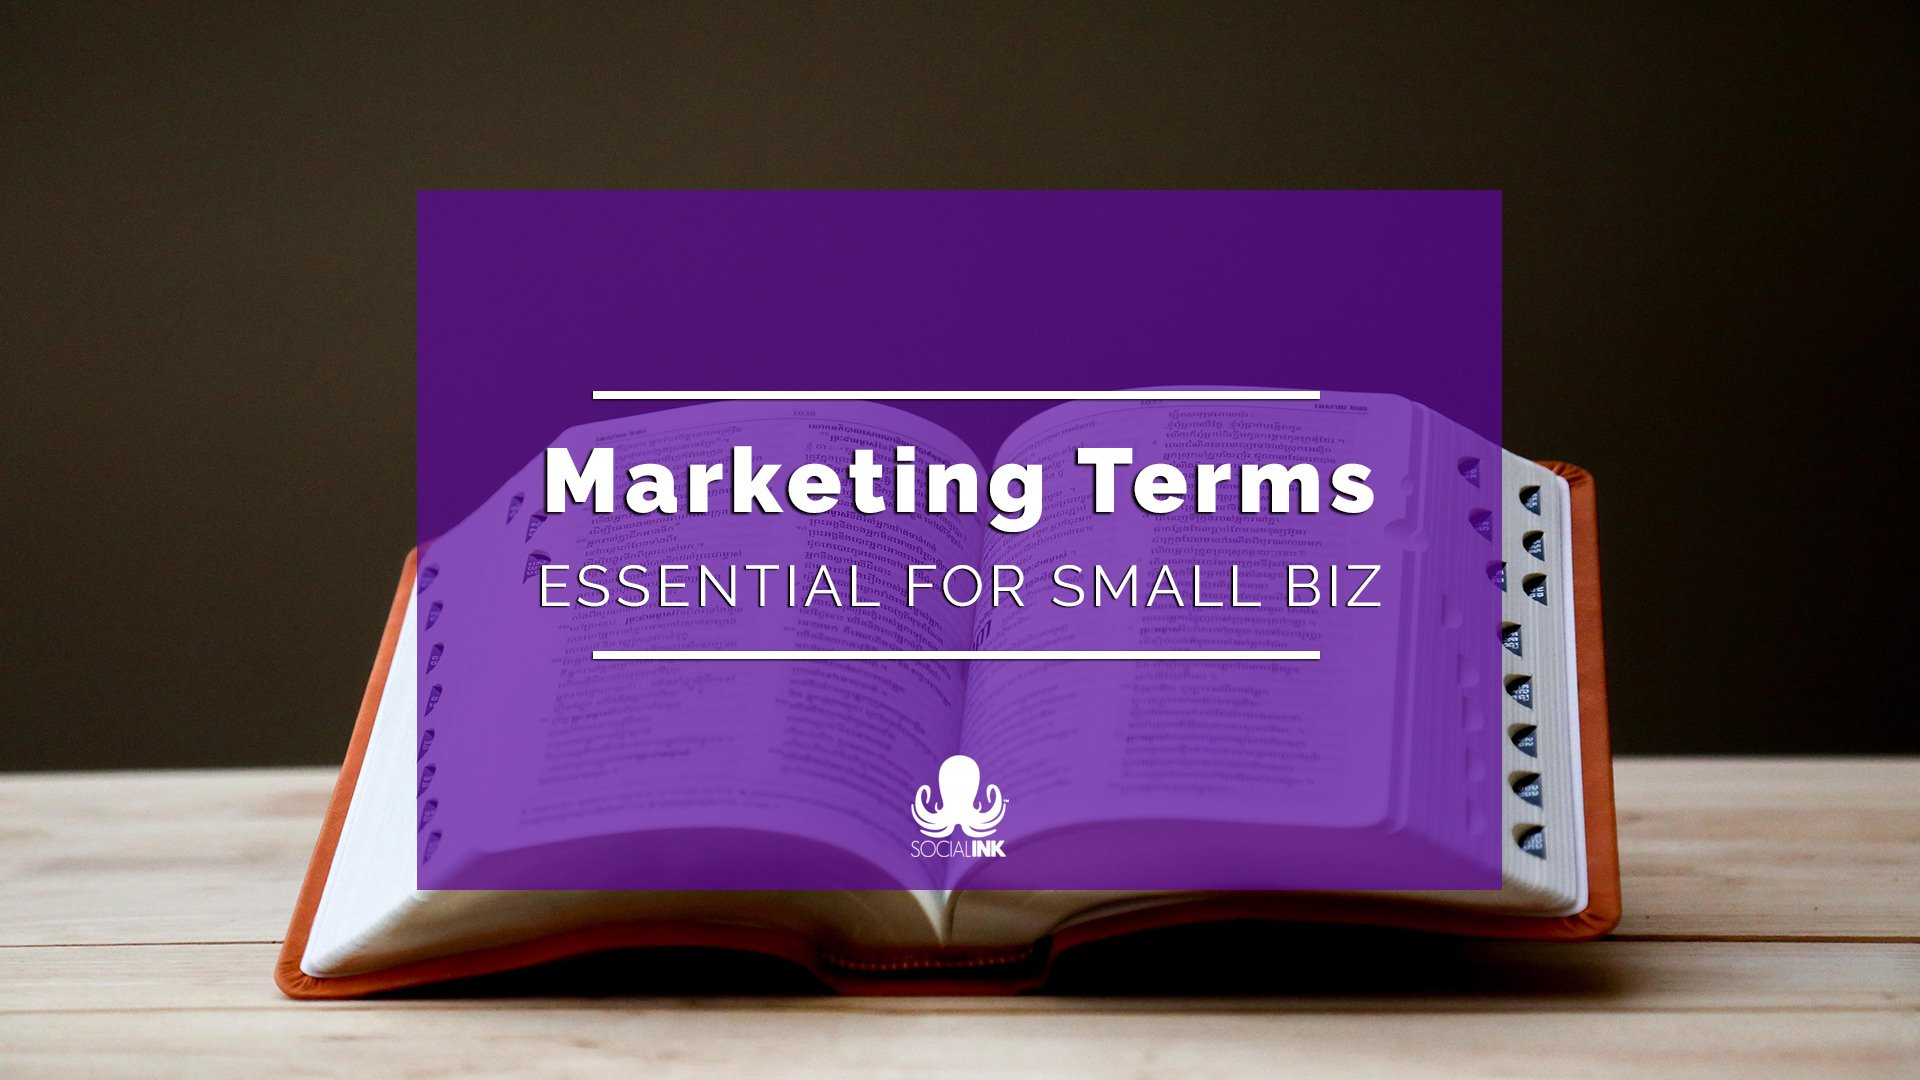 29 Marketing Terms Defined